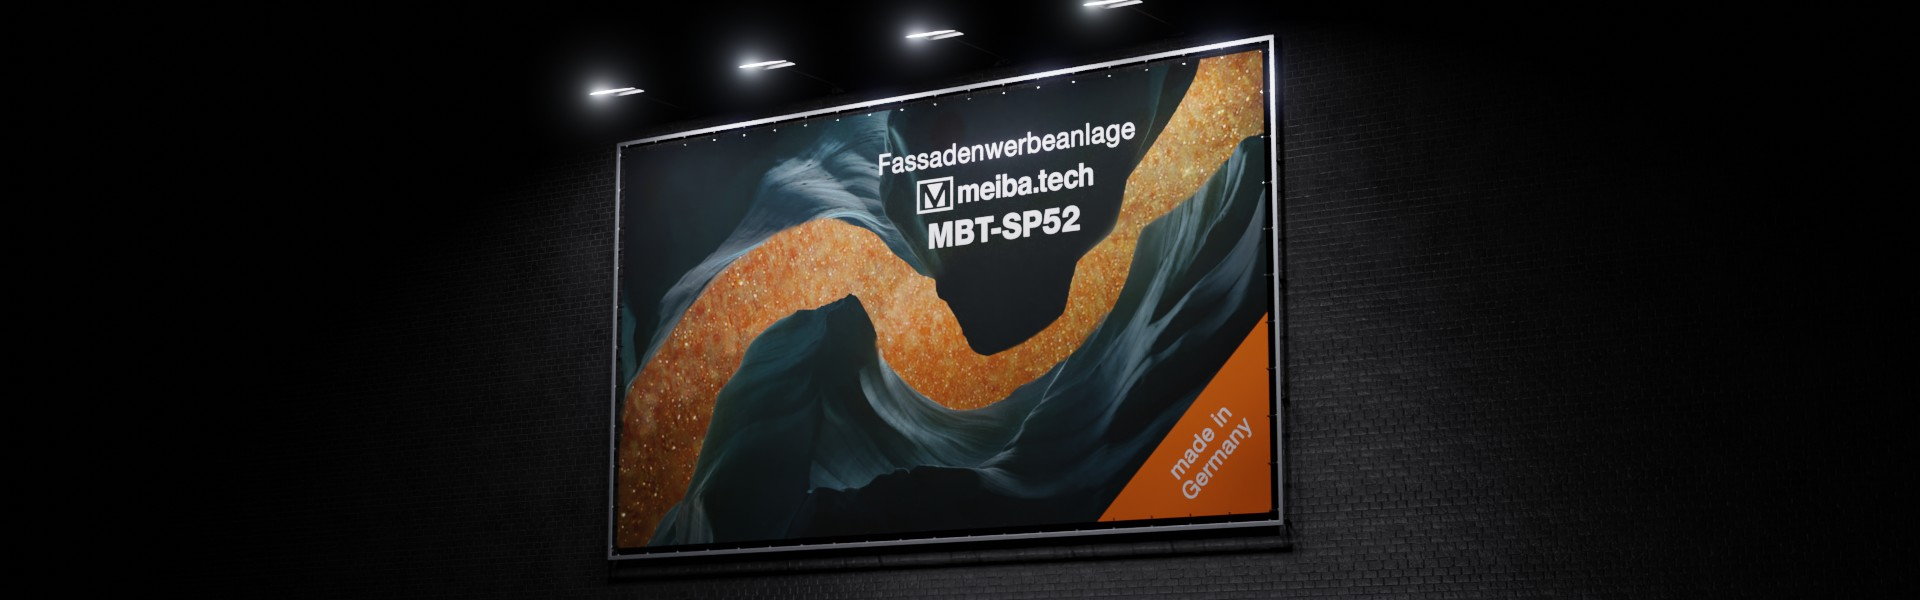 MBT-SP52: Modular advertising system for the attachment of facade advertising, side view illuminated